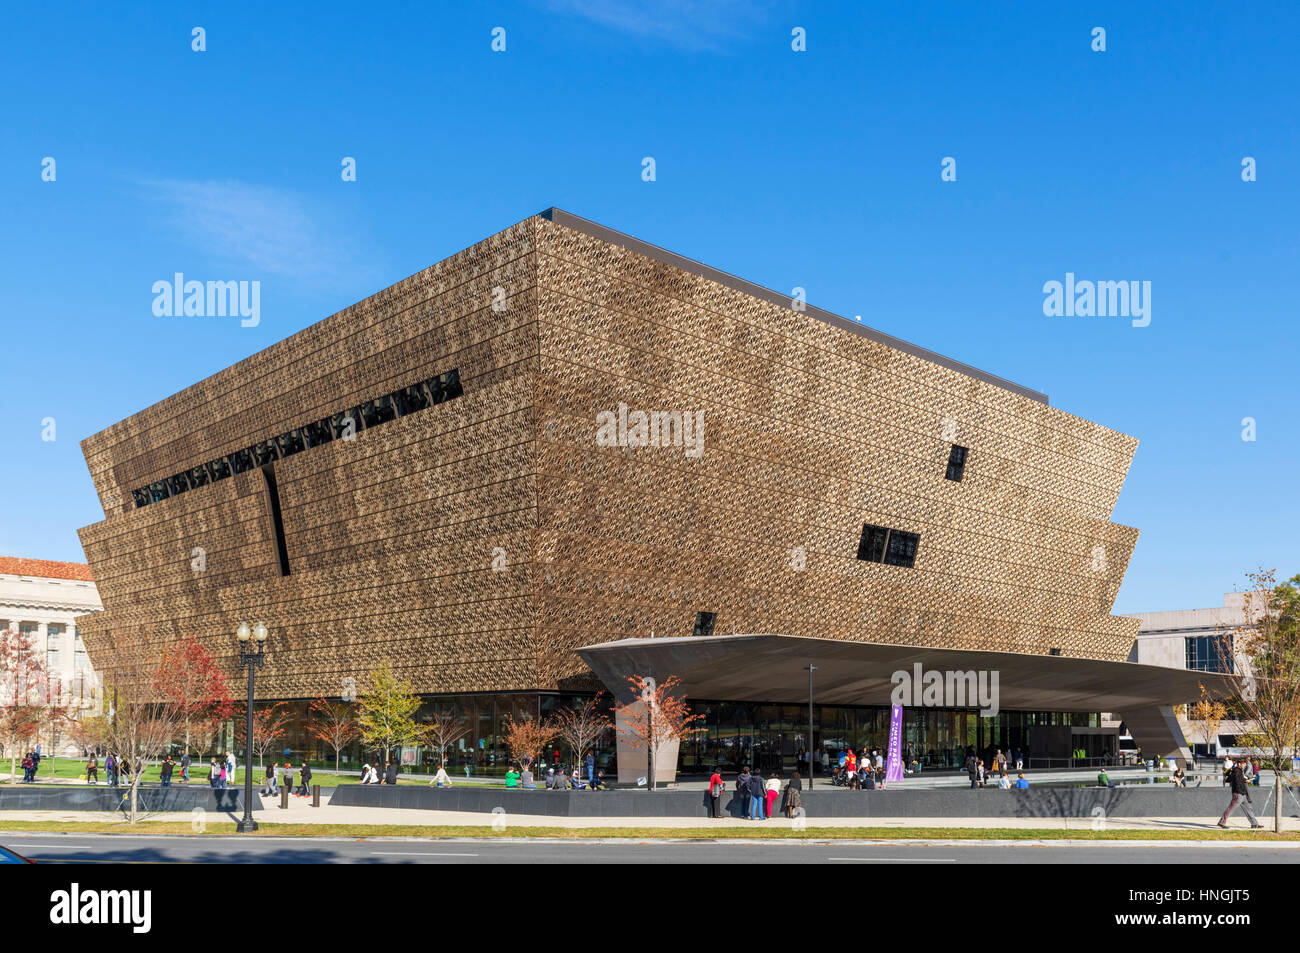 National Museum of African American History and Culture, National Mall, Washington DC, USA Photo Stock